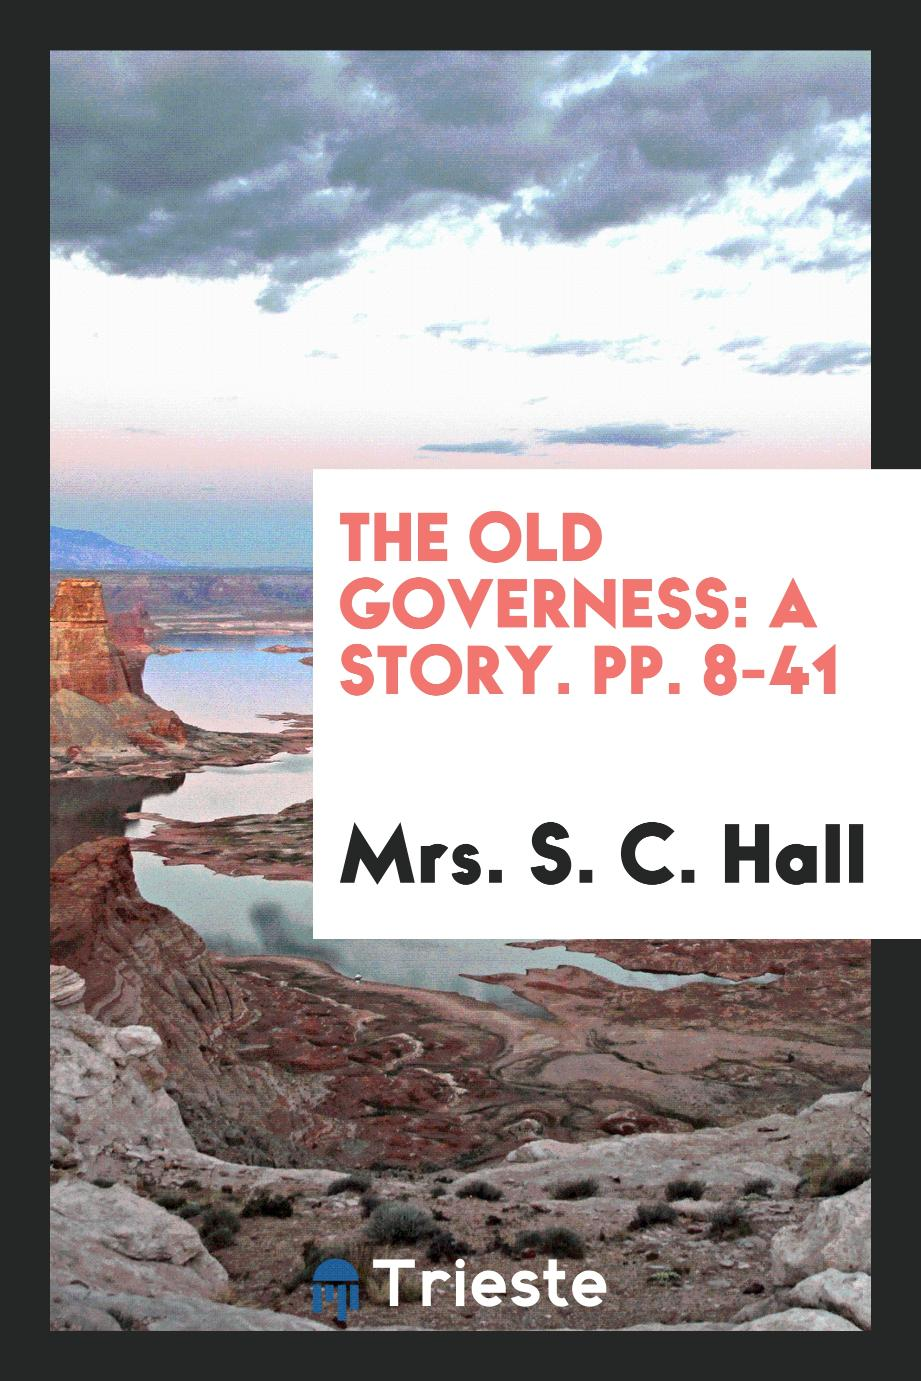 The Old Governess: A Story. pp. 8-41